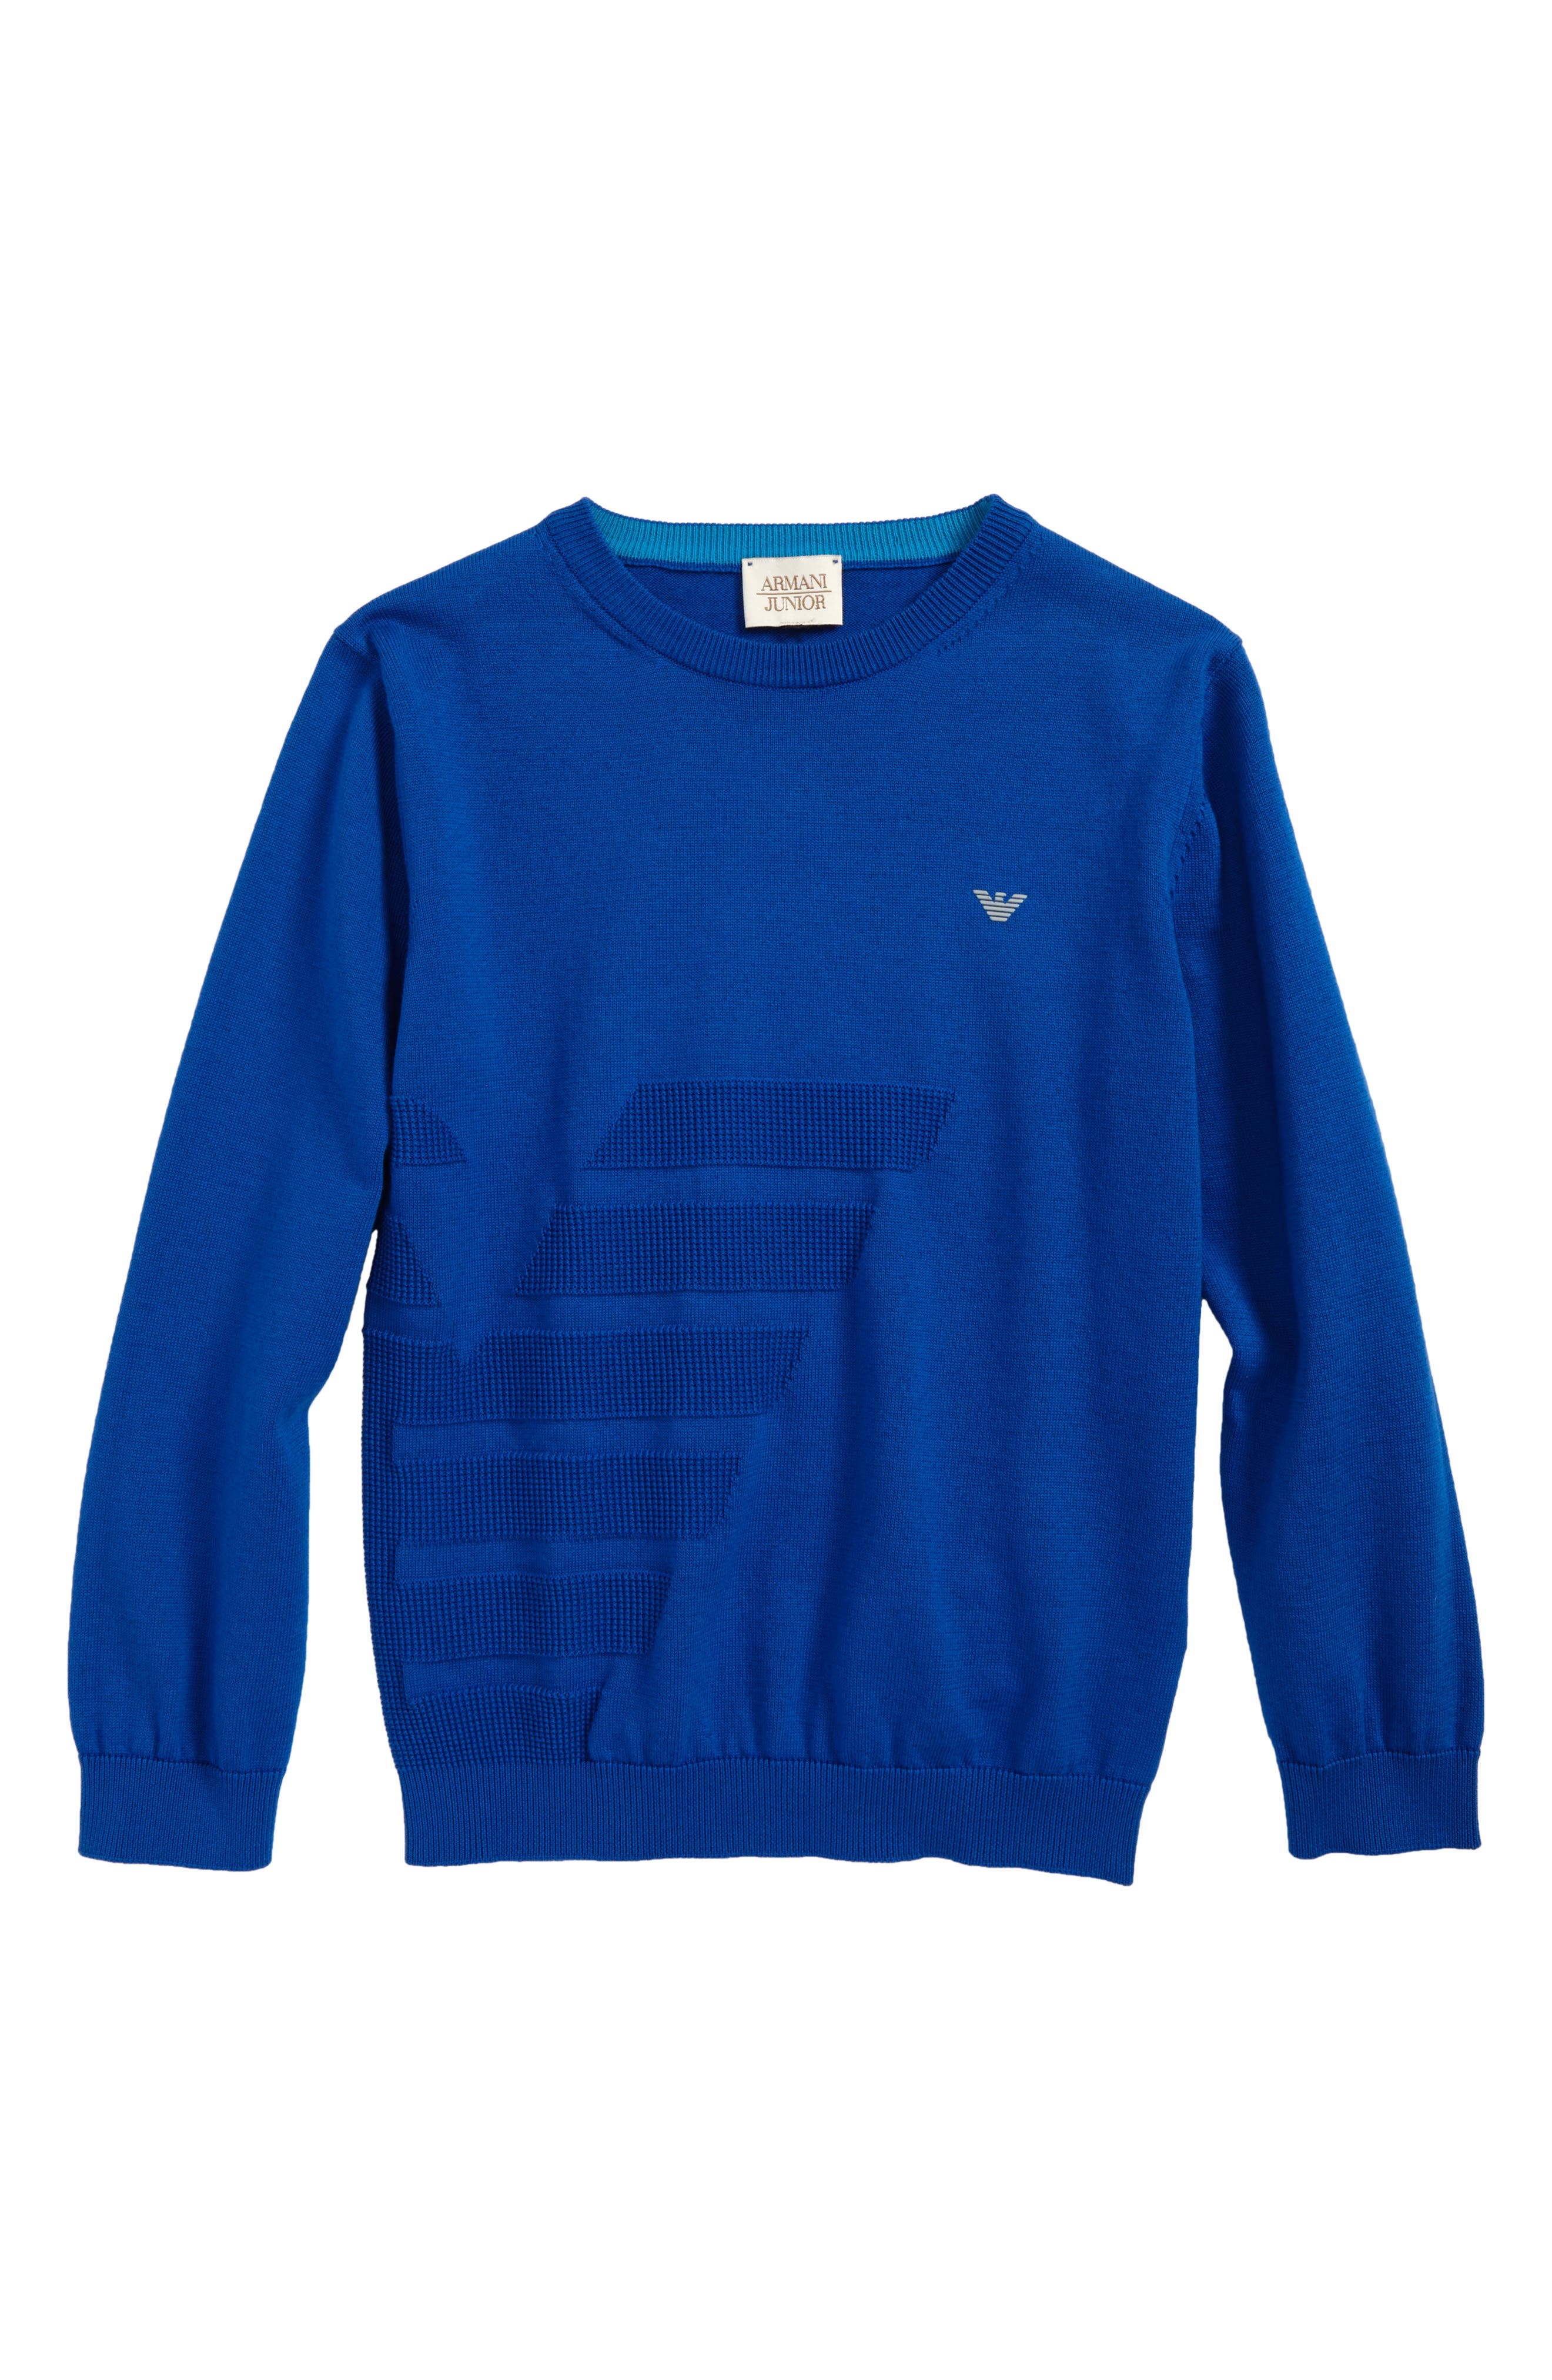 Logo Sweater,                             Main thumbnail 1, color,                             434